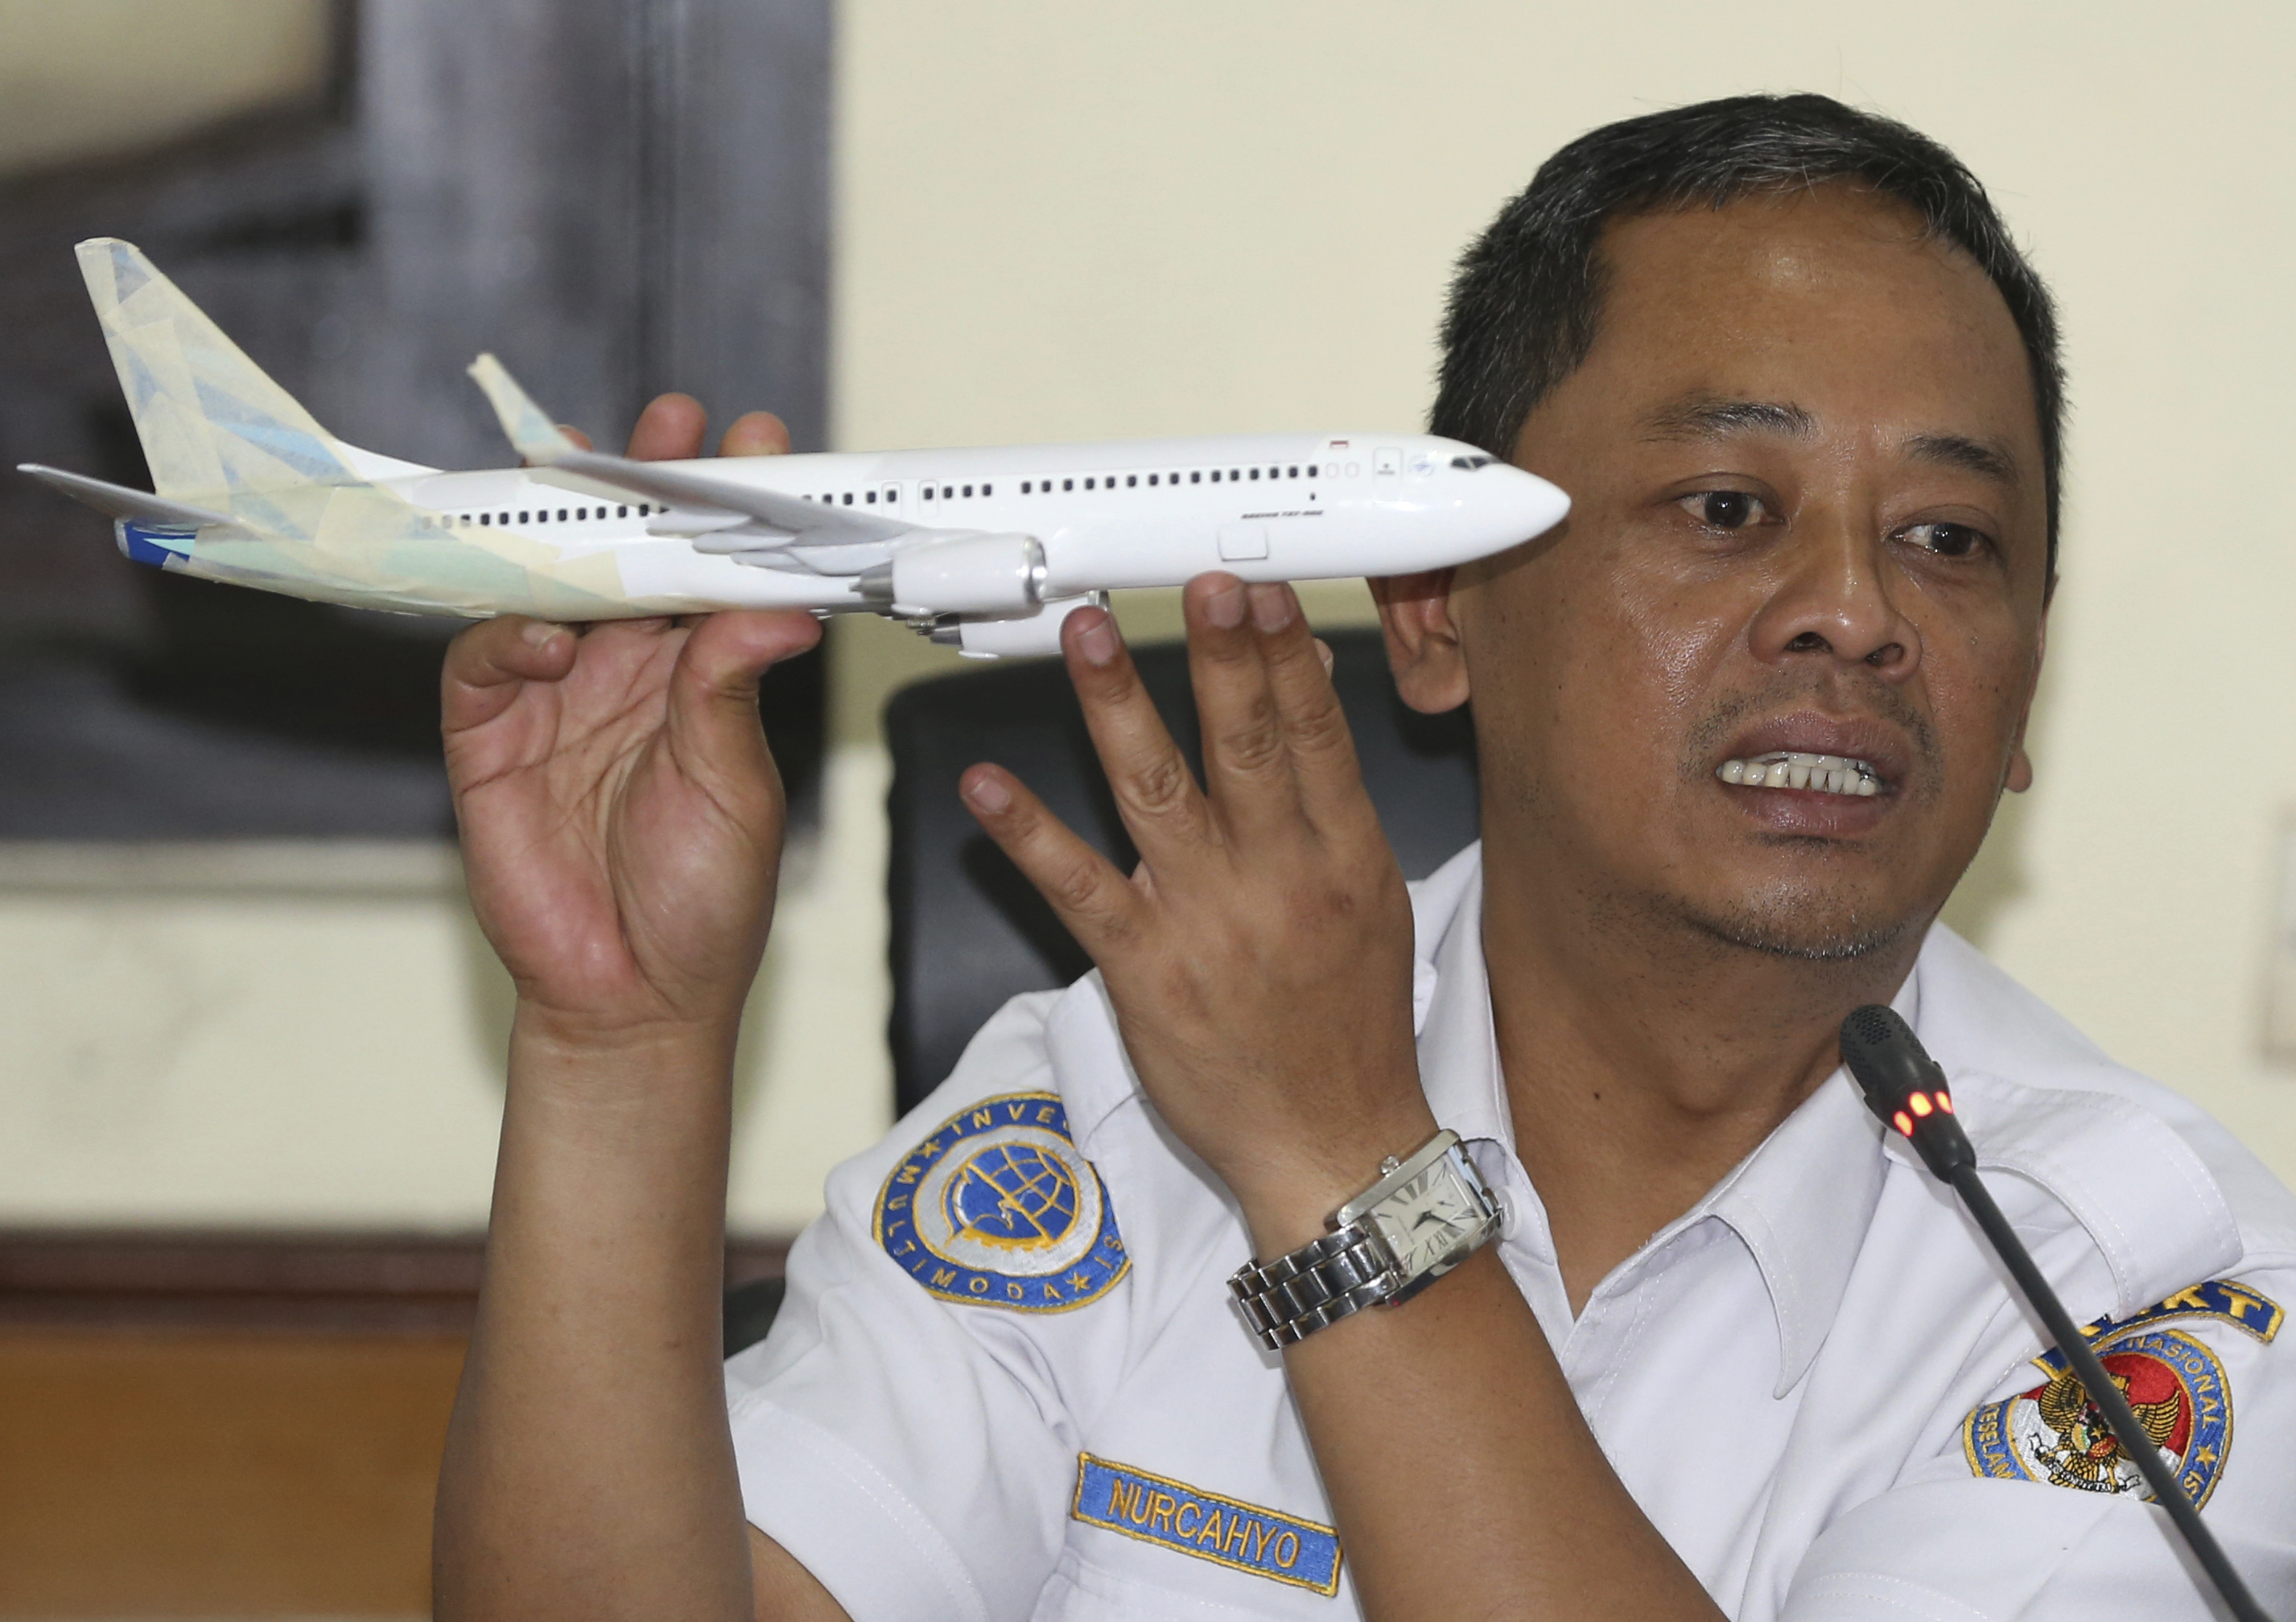 National Transportation Safety Committee investigator Nurcahyo Utomo during a press conference on the committee's preliminary findings on their investigation on the Lion Air crash, in Jakarta, Nov. 28, 2018.